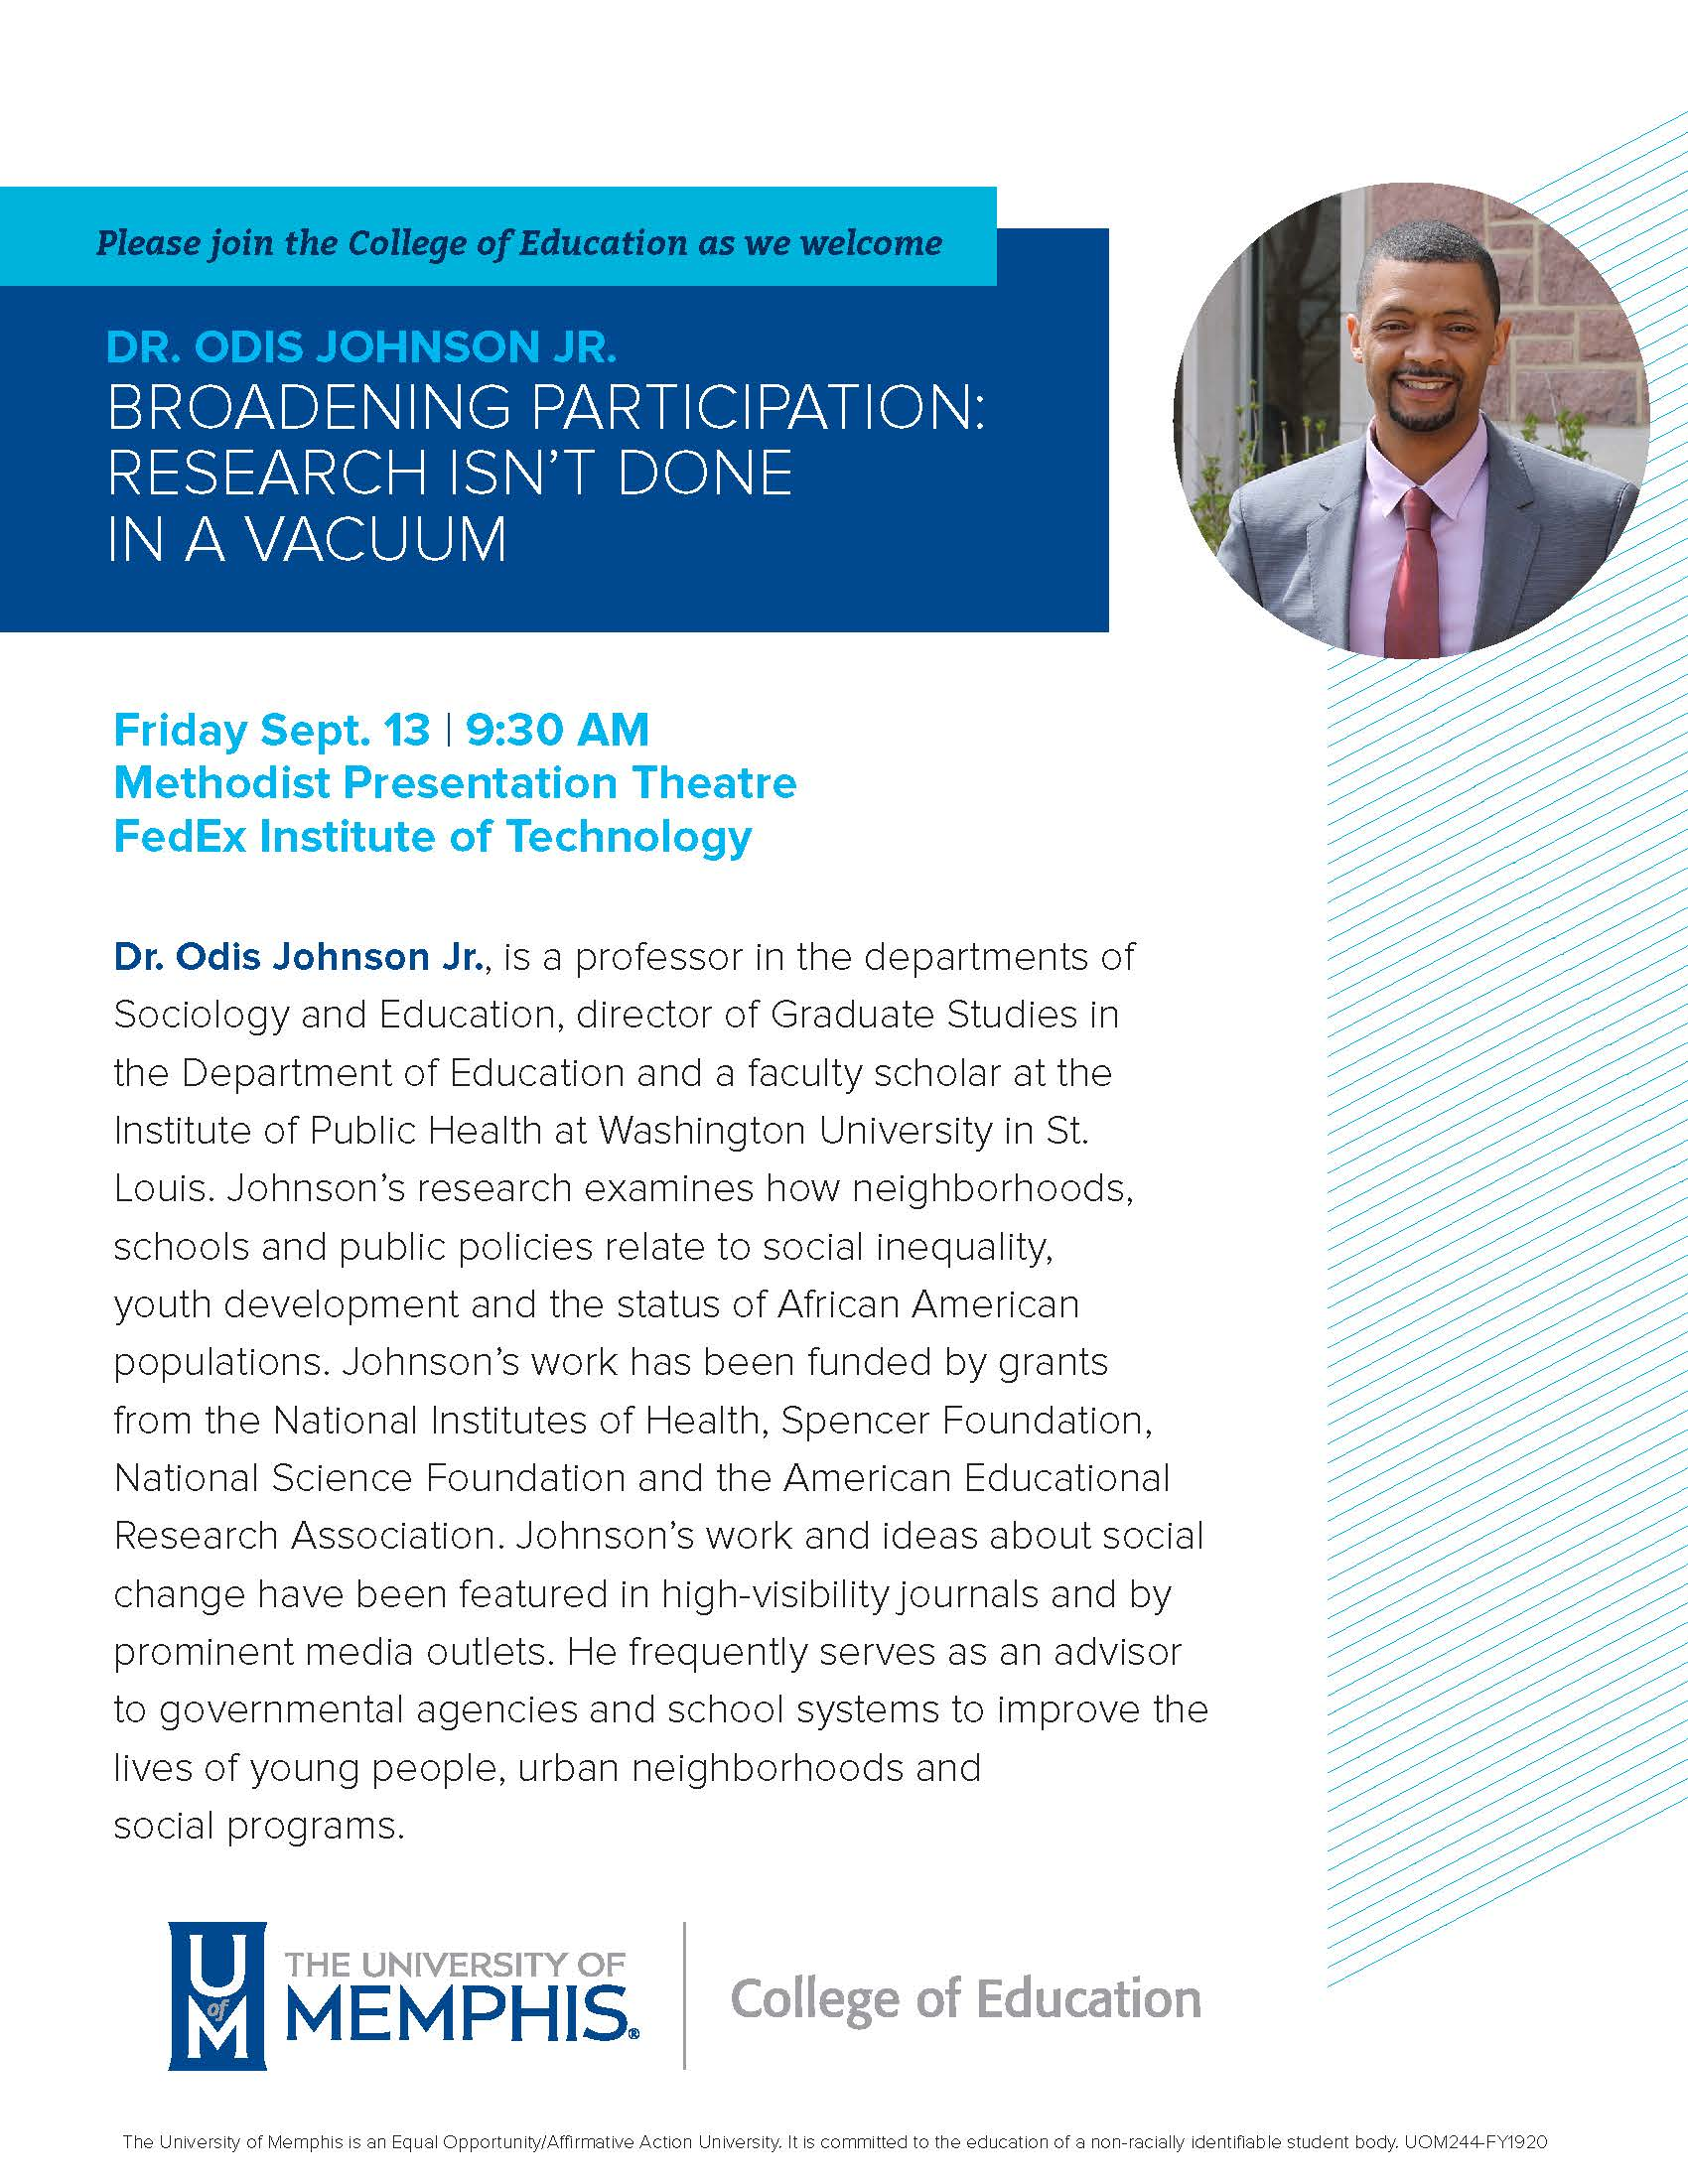 Please join the College of Education as we welcome Dr. Odis Johnson Jr for  Broadening Participation: Research Isn't Done In a Vacuum Friday September 13, 9:30am Methodist Room, FedEx Institute of Technology  Odis Johnson Jr., PhD, is a Professor in the Departments of Sociology and Education, Director of Graduate Studies in the Department of Education, and a Faculty Scholar at the Institute of Public Health at Washington University in St. Louis. Dr. Johnson's research examines how neighborhoods, schools and public policies relate to social inequality, youth development and the status of African American populations. Dr. Johnson's work has been funded by grants from the National Institutes of Health, Spencer Foundation, National Science Foundation (NSF), and the American Educational Research Association, and has appeared in high visibility journals. Dr. Johnson's work and ideas about social change have been featured in prominent media outlets. He frequently serves as an advisor to governmental agencies and school systems to improve the lives of young people, urban neighborhoods, and social programs.